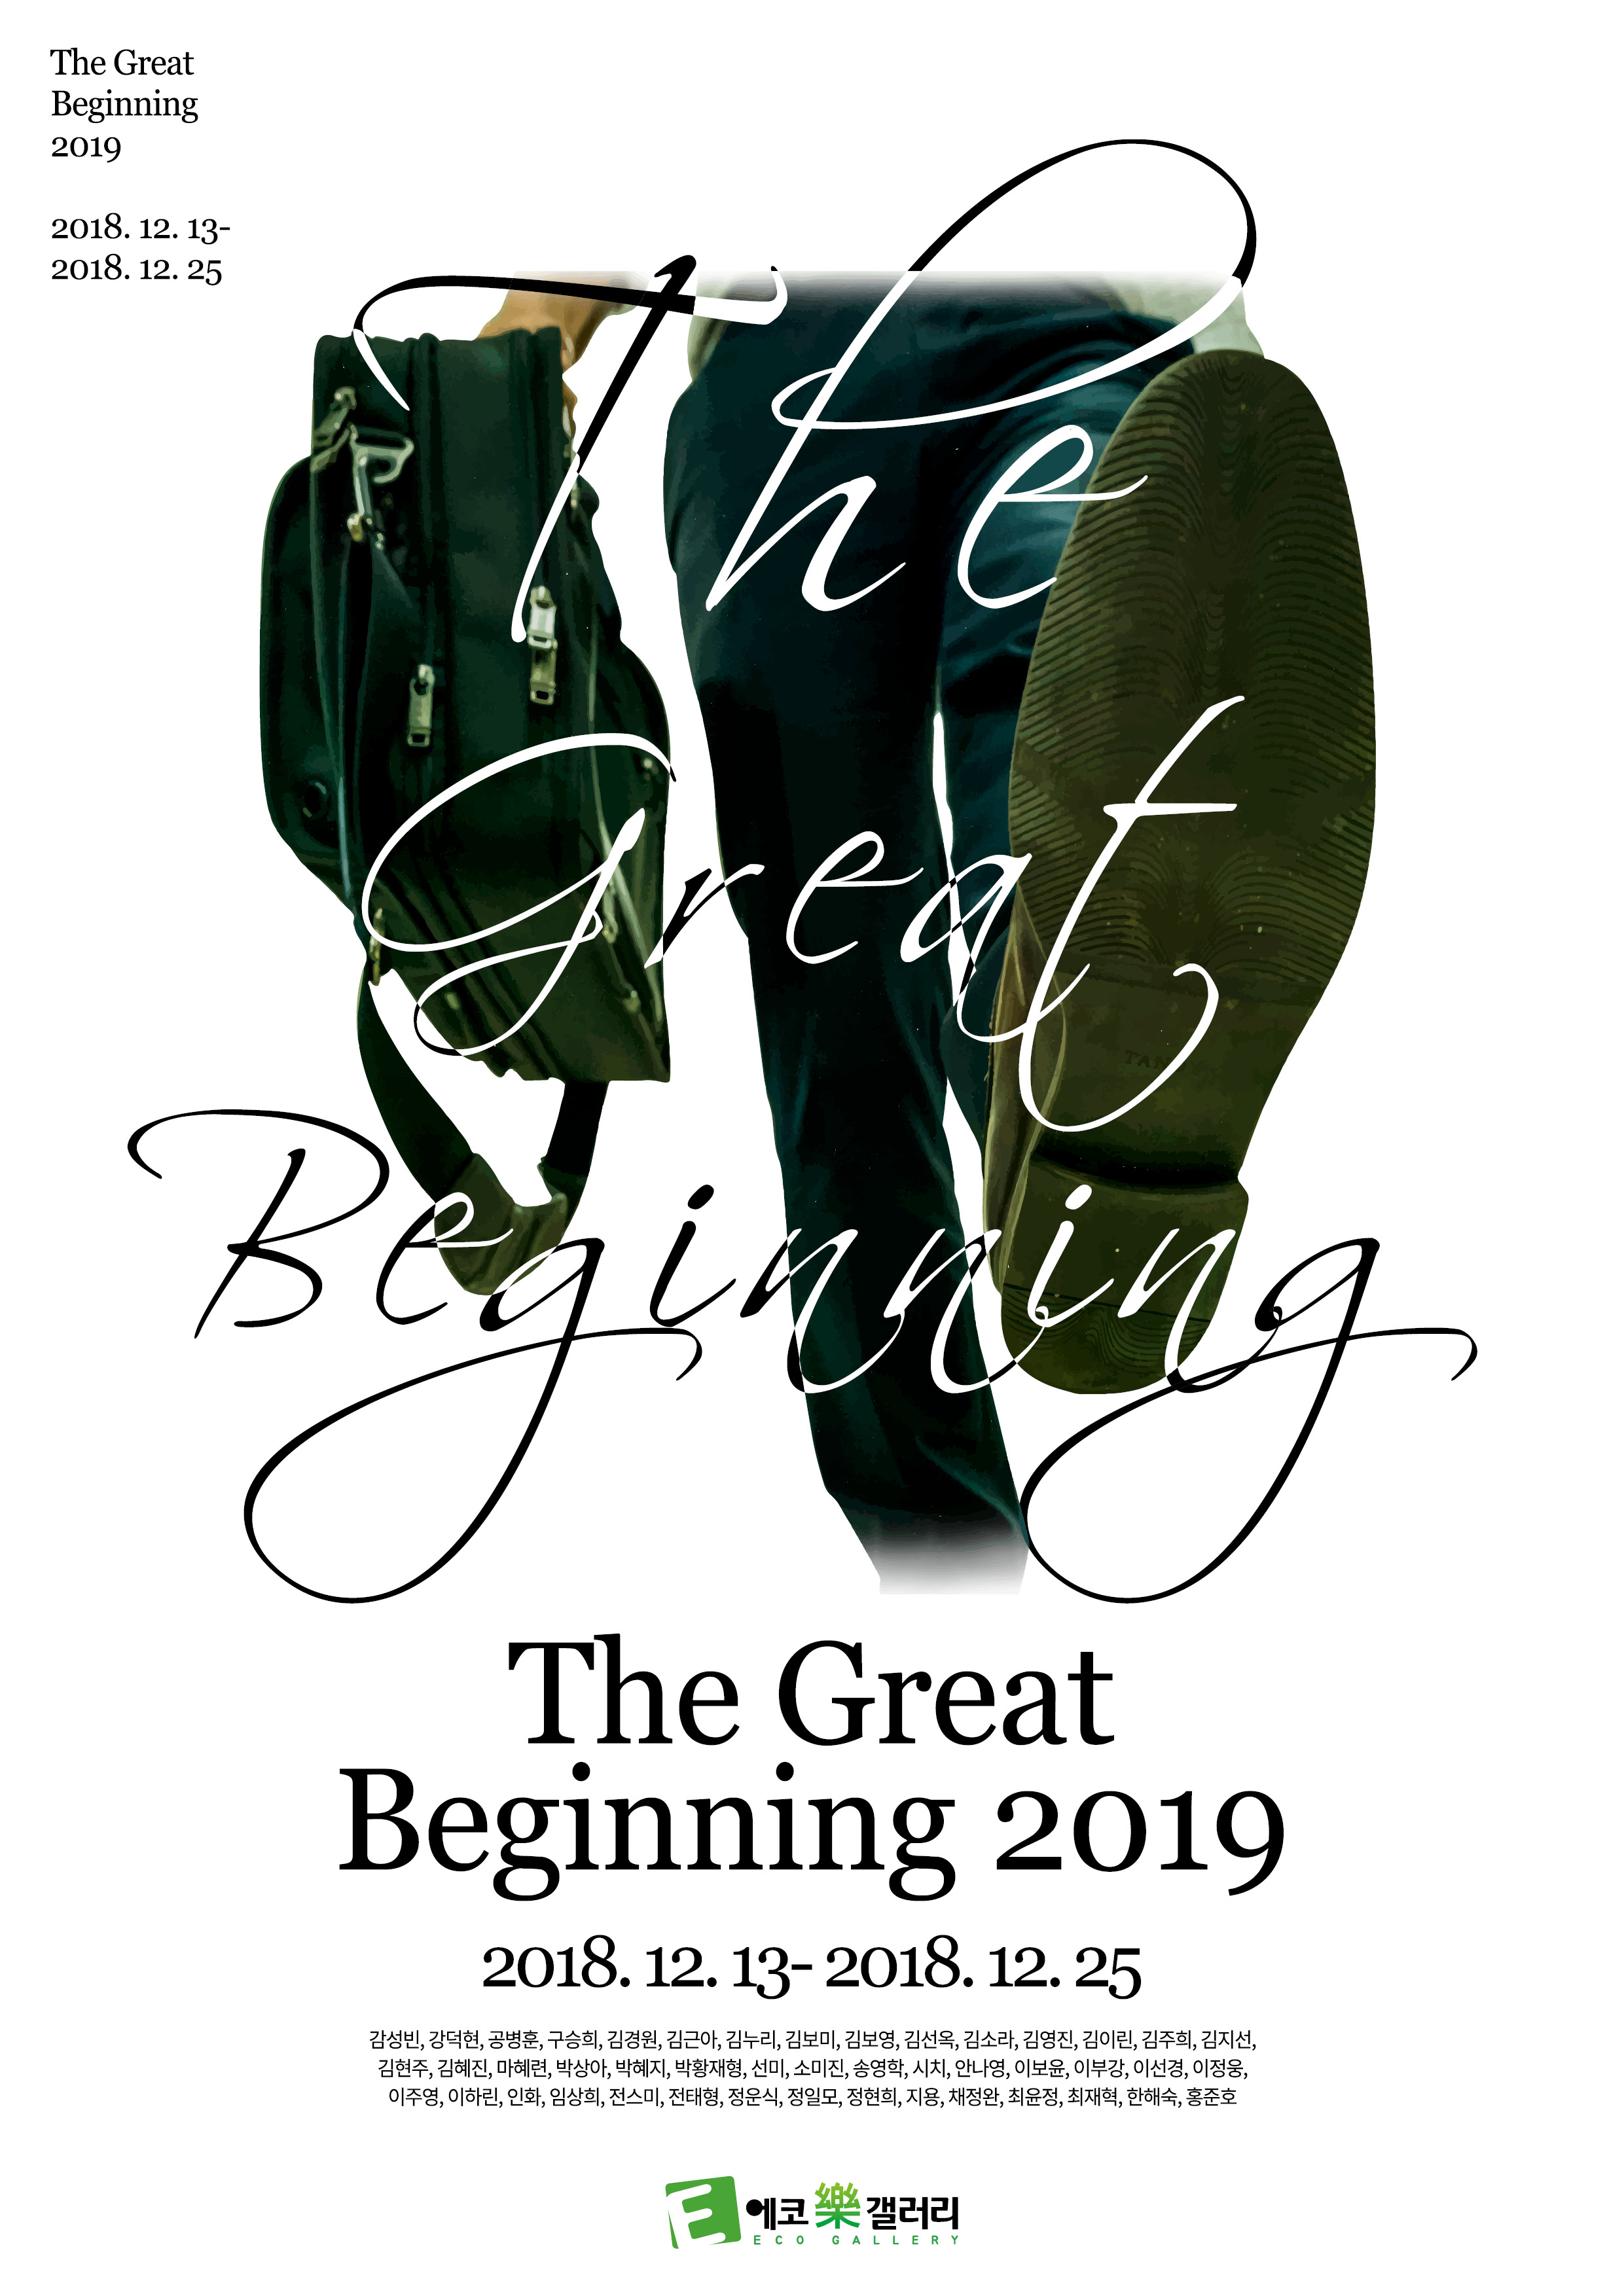 The great beginning 2019